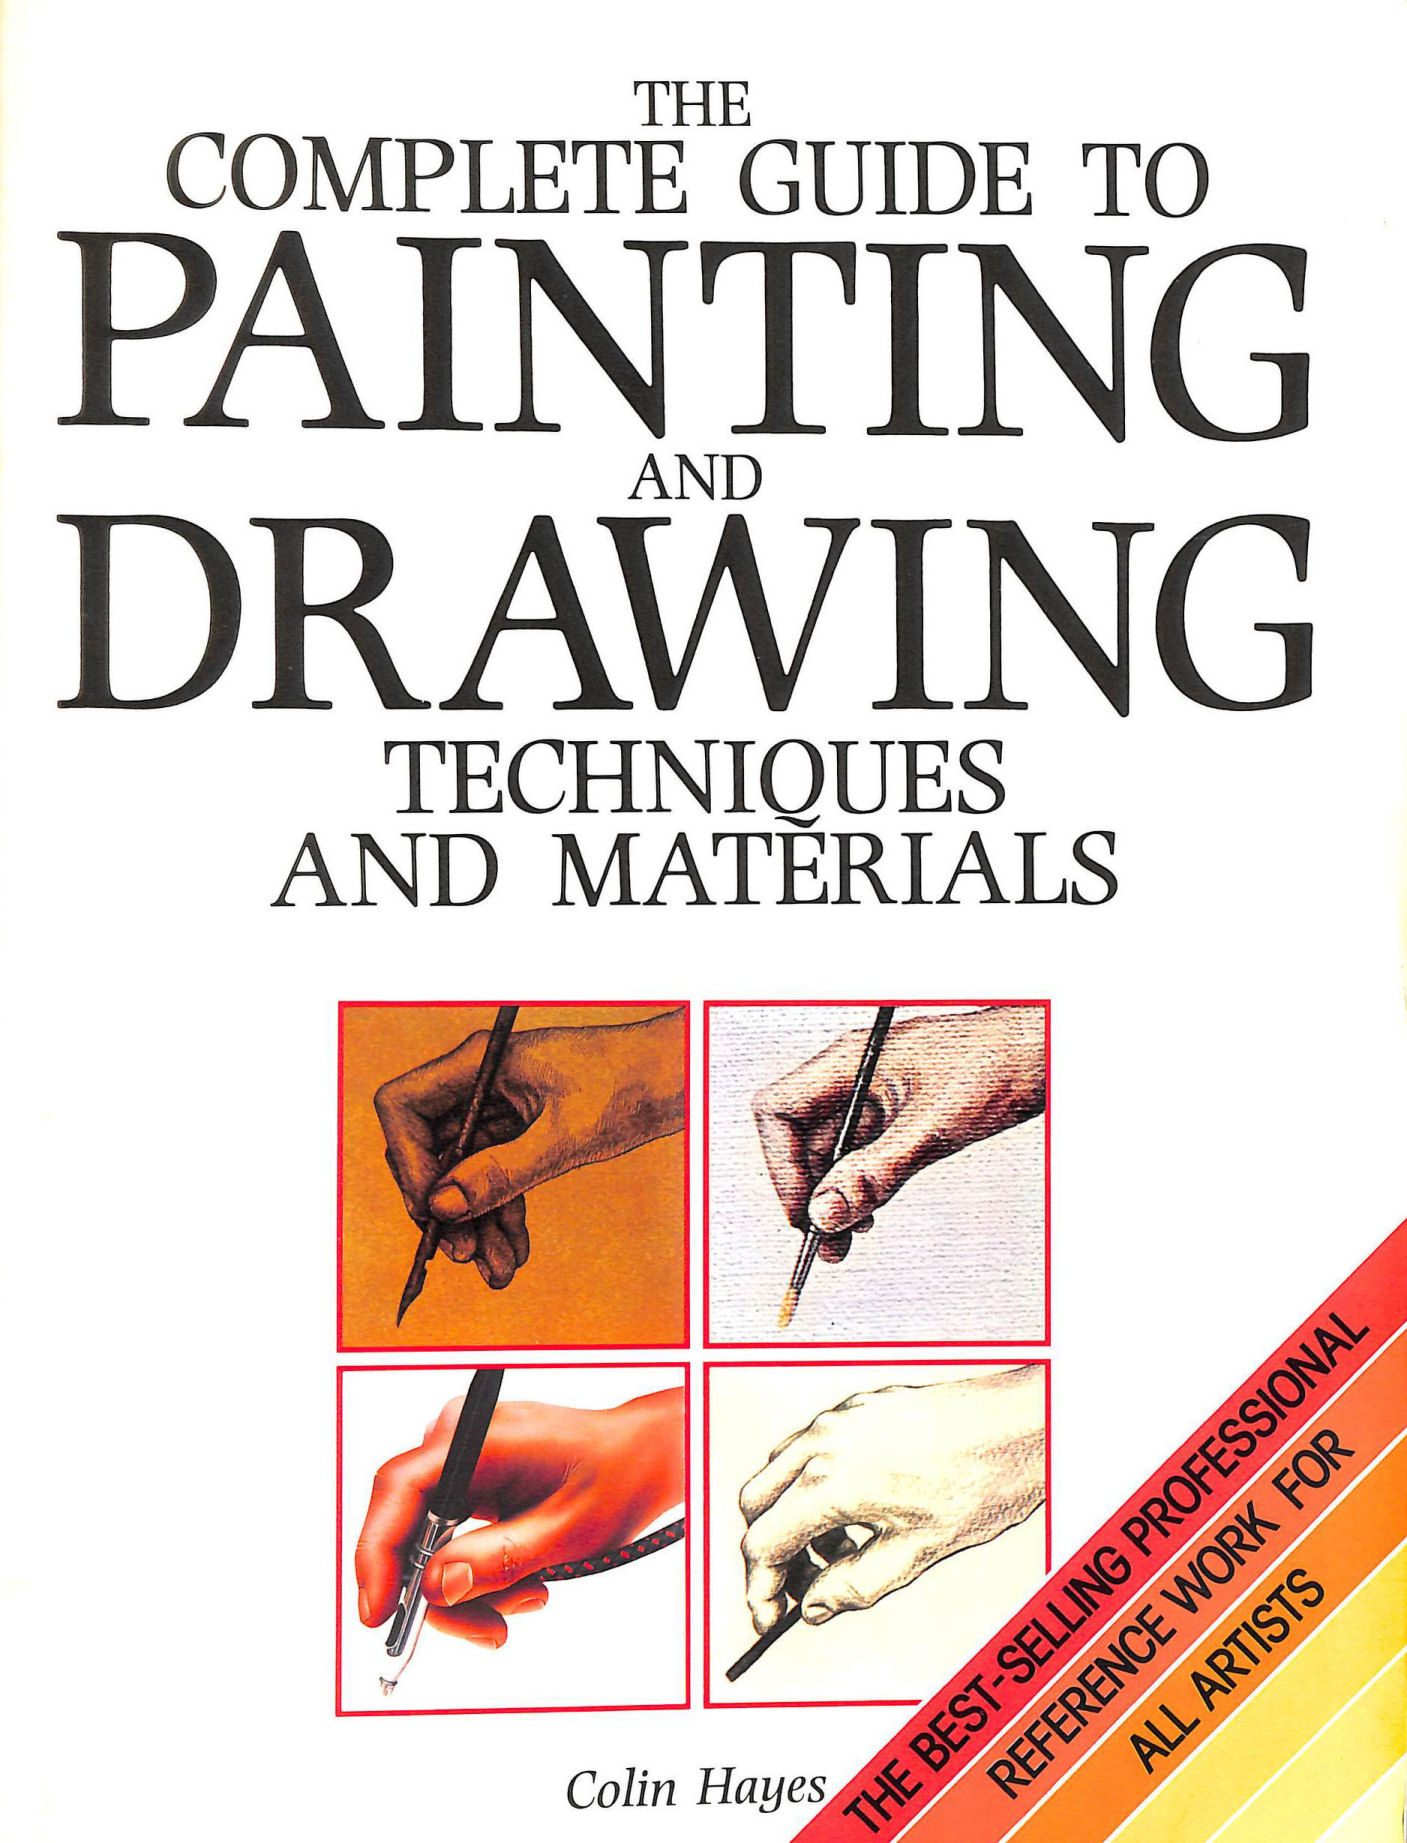 Image for The Complete Guide to Painting and Drawing Techniques and Materials (A QED book)